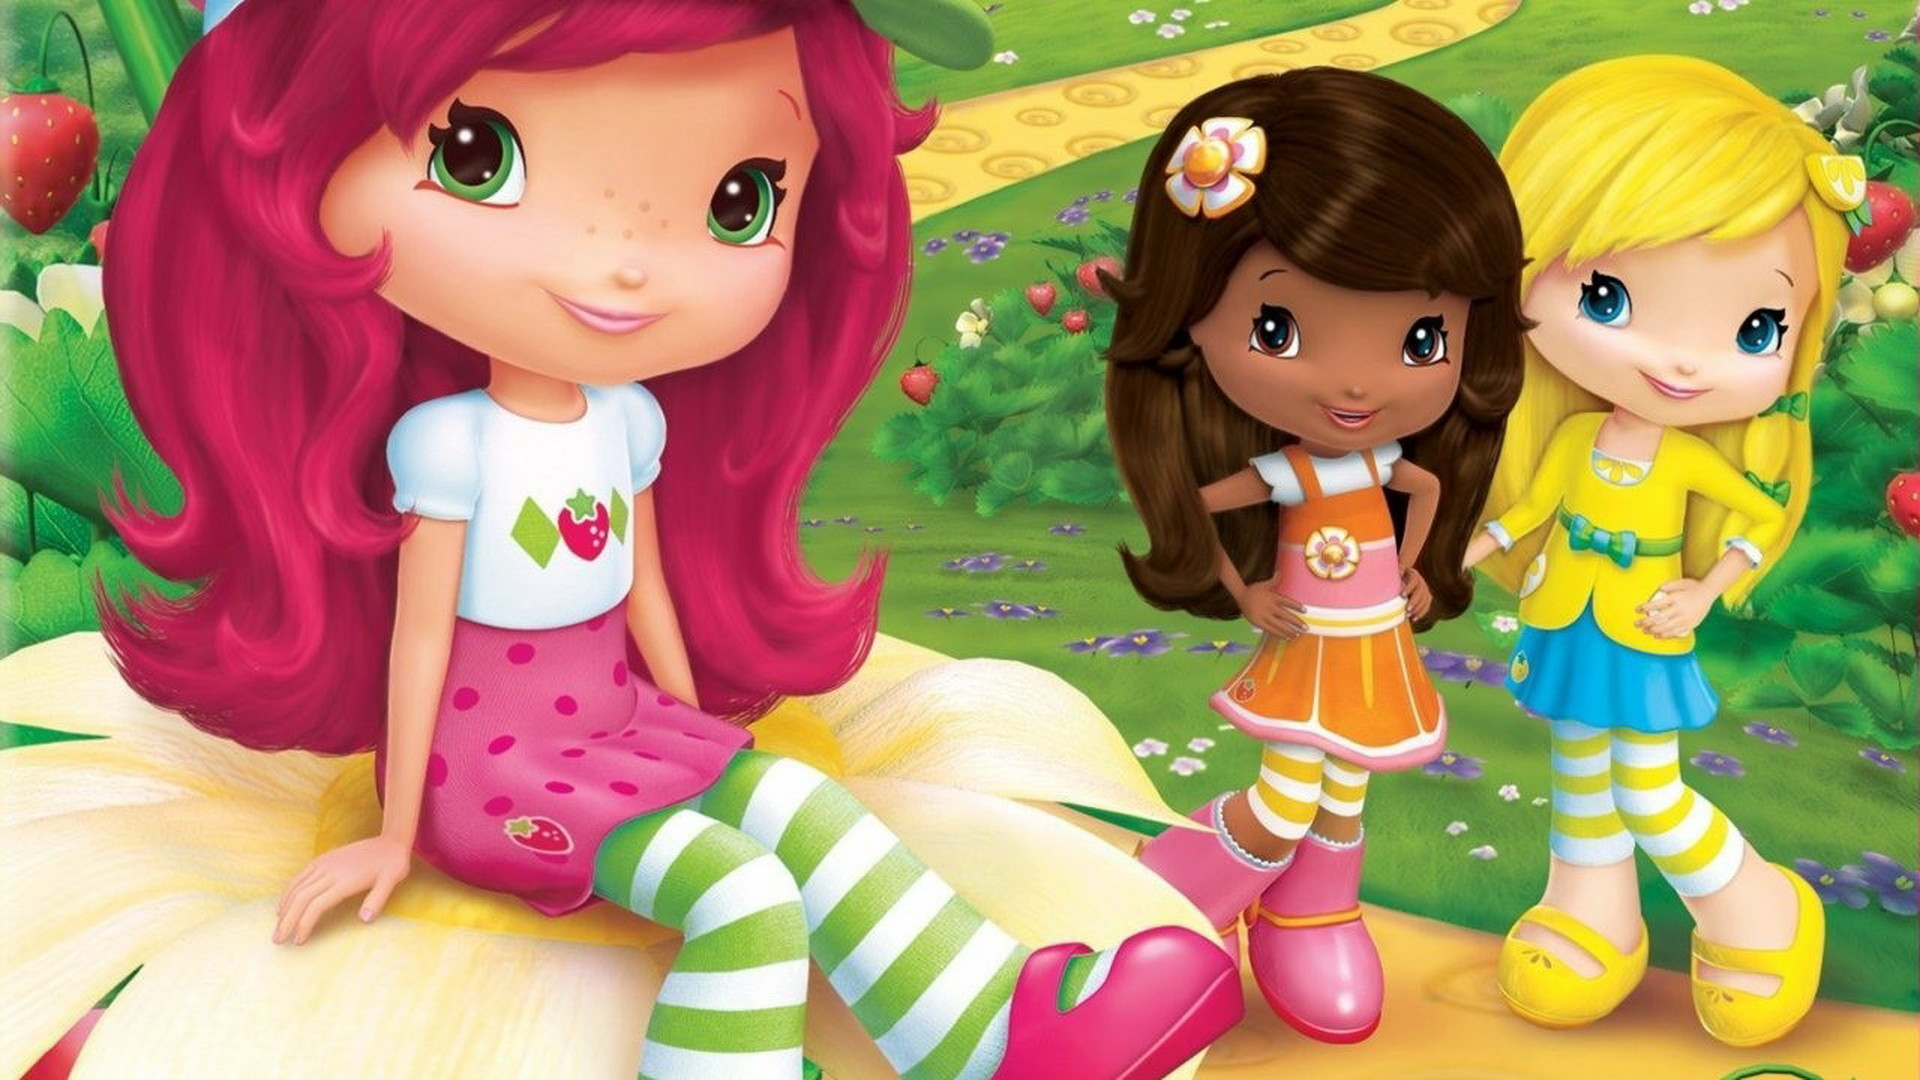 Related Wallpapers from Cute Lilo and Stitch Wallpaper. Strawberry Shortcake